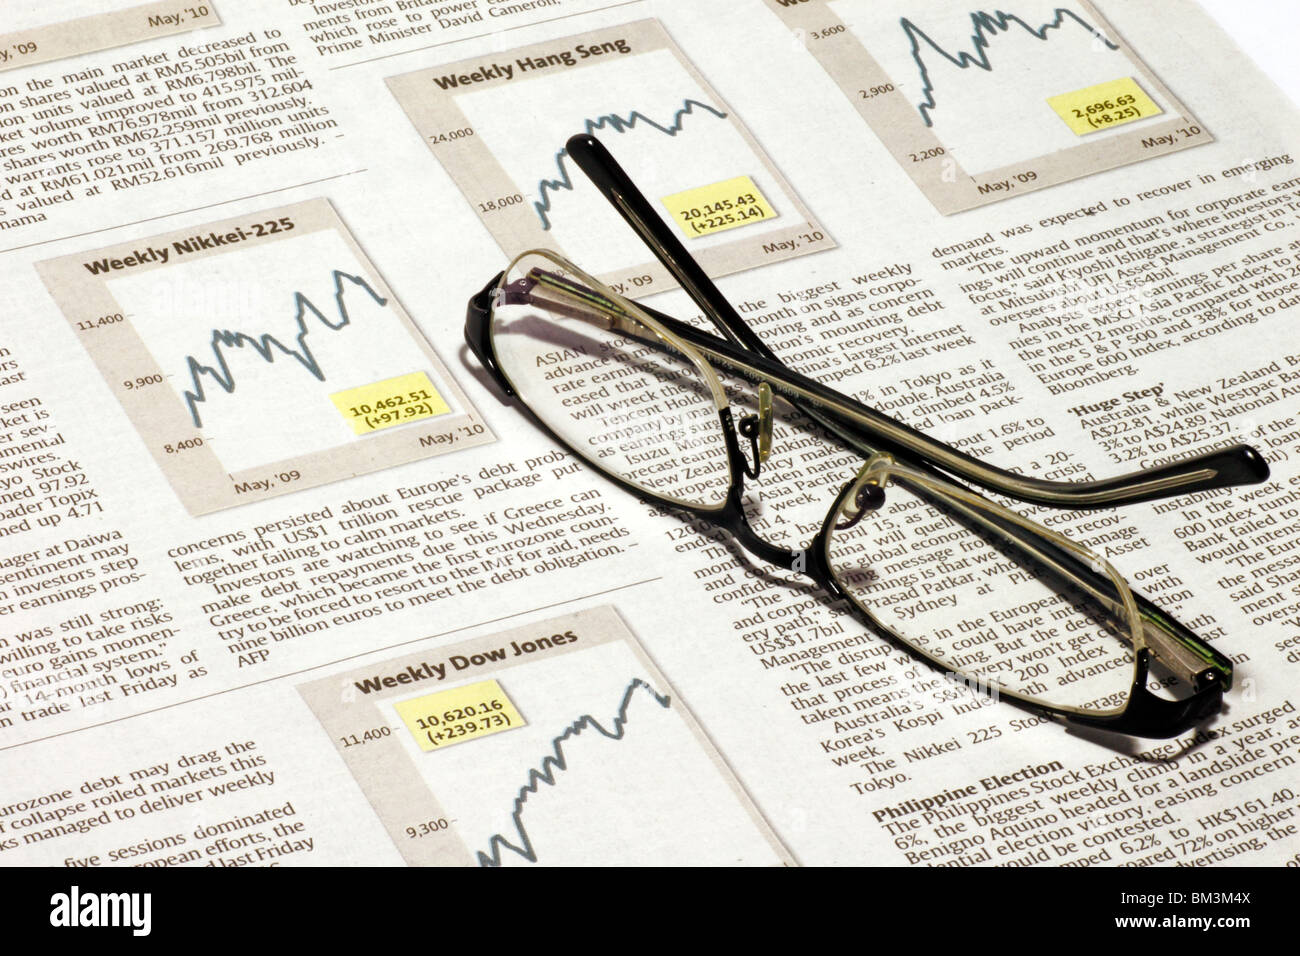 An image of a spectacle on a stock market sheet showing the Nikkei, Hang Seng & Dow Jones index  graph. - Stock Image